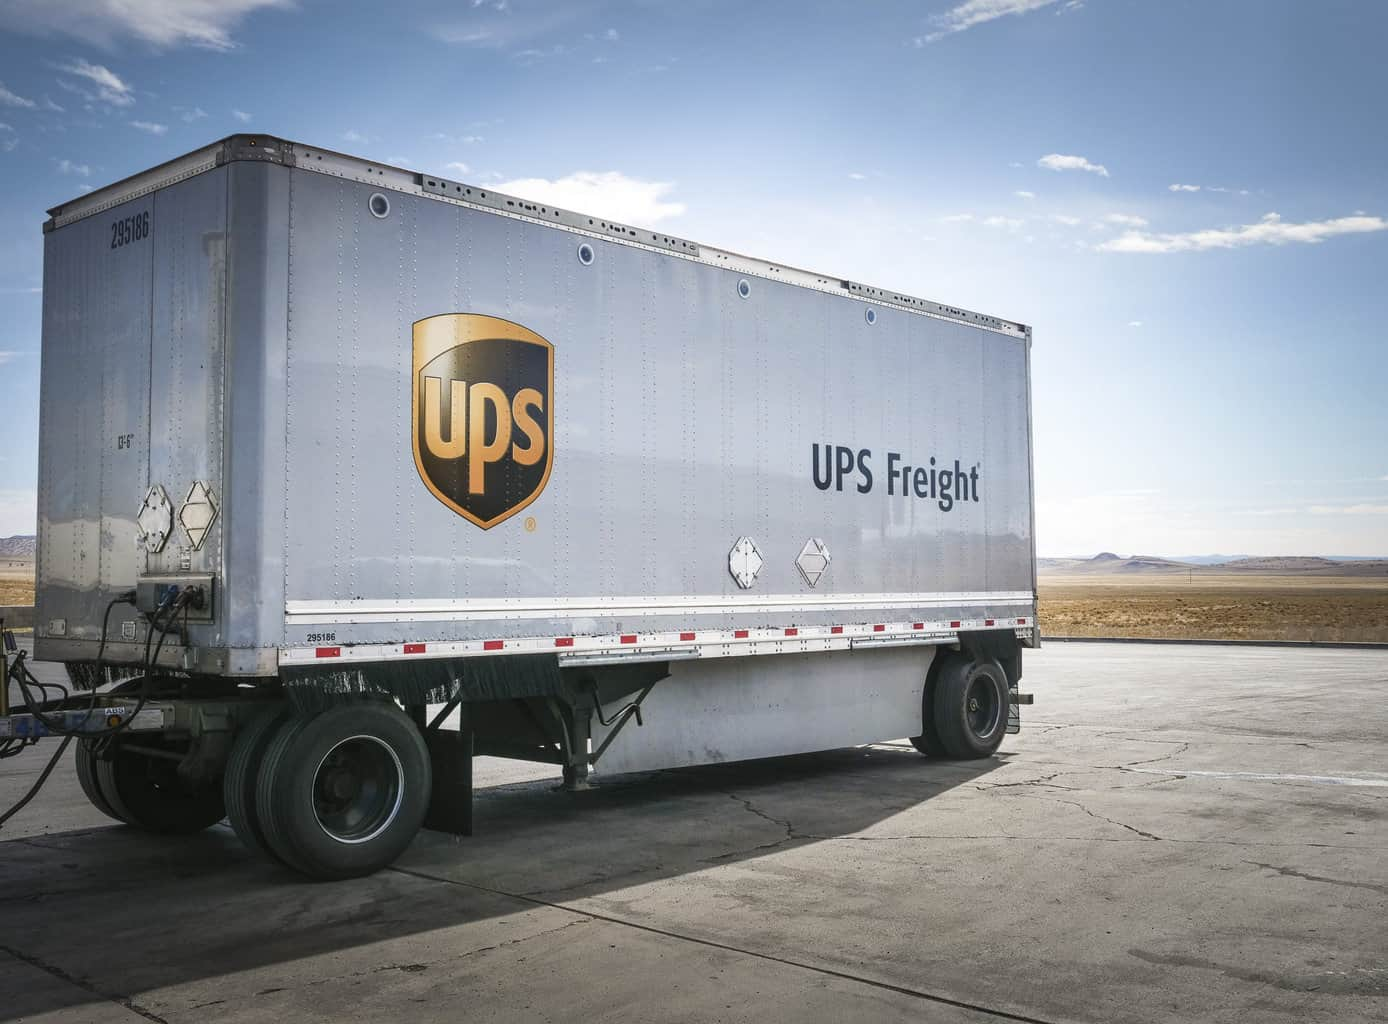 Photo of UPS Freight shippers took volume elsewhere as strike concerns loomed. Will they return?